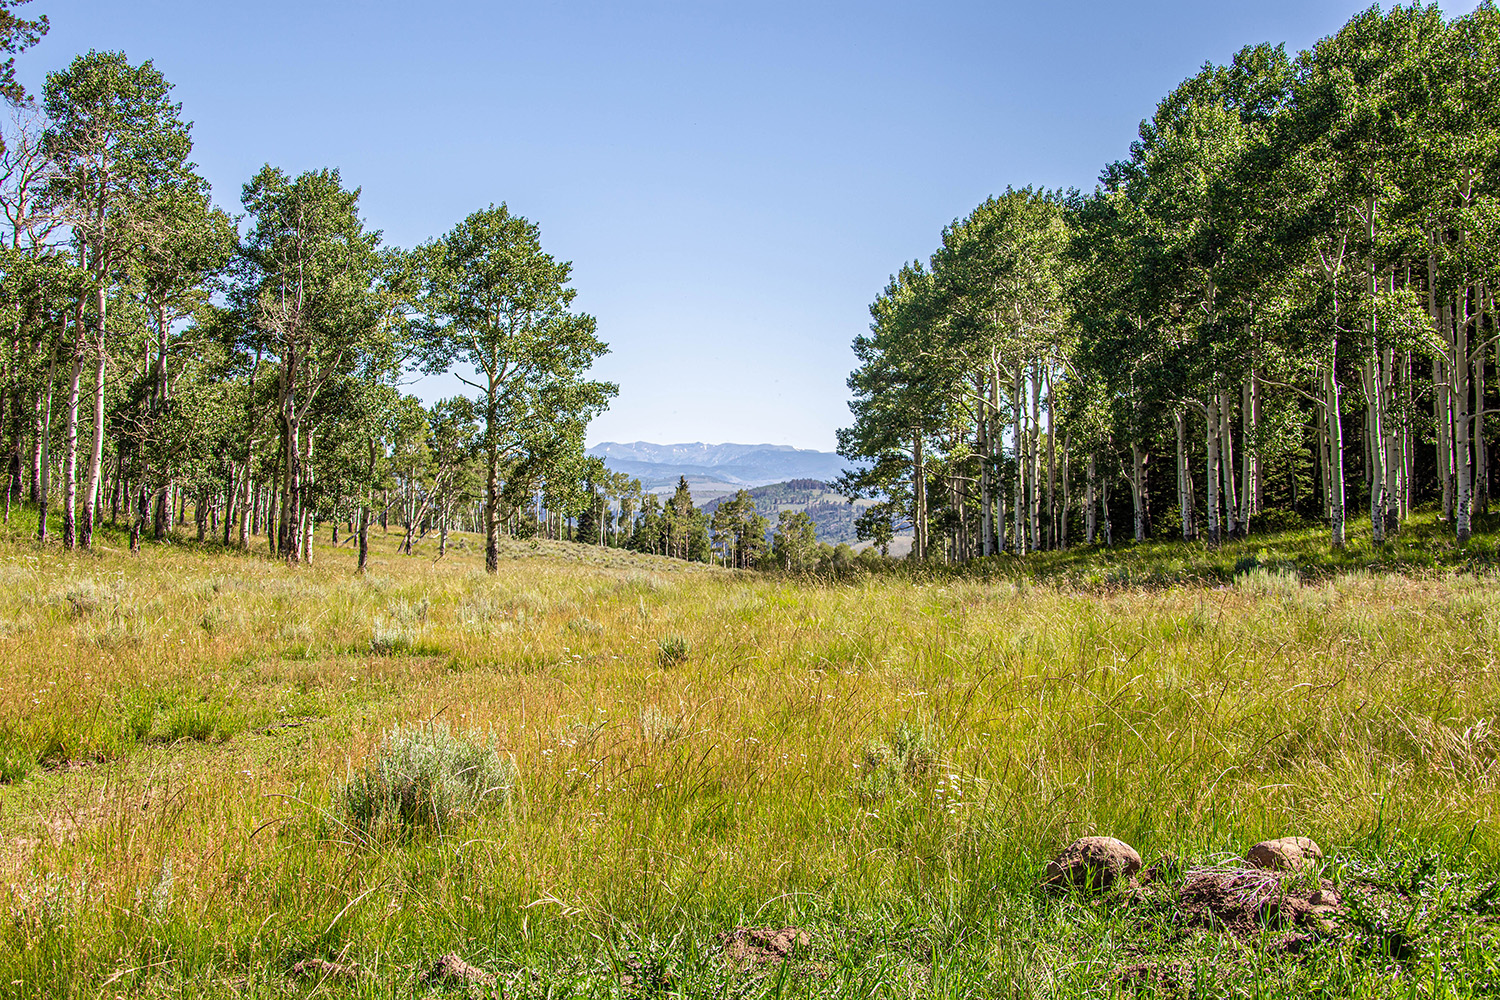 Mountain Property for Sale in western Colorado